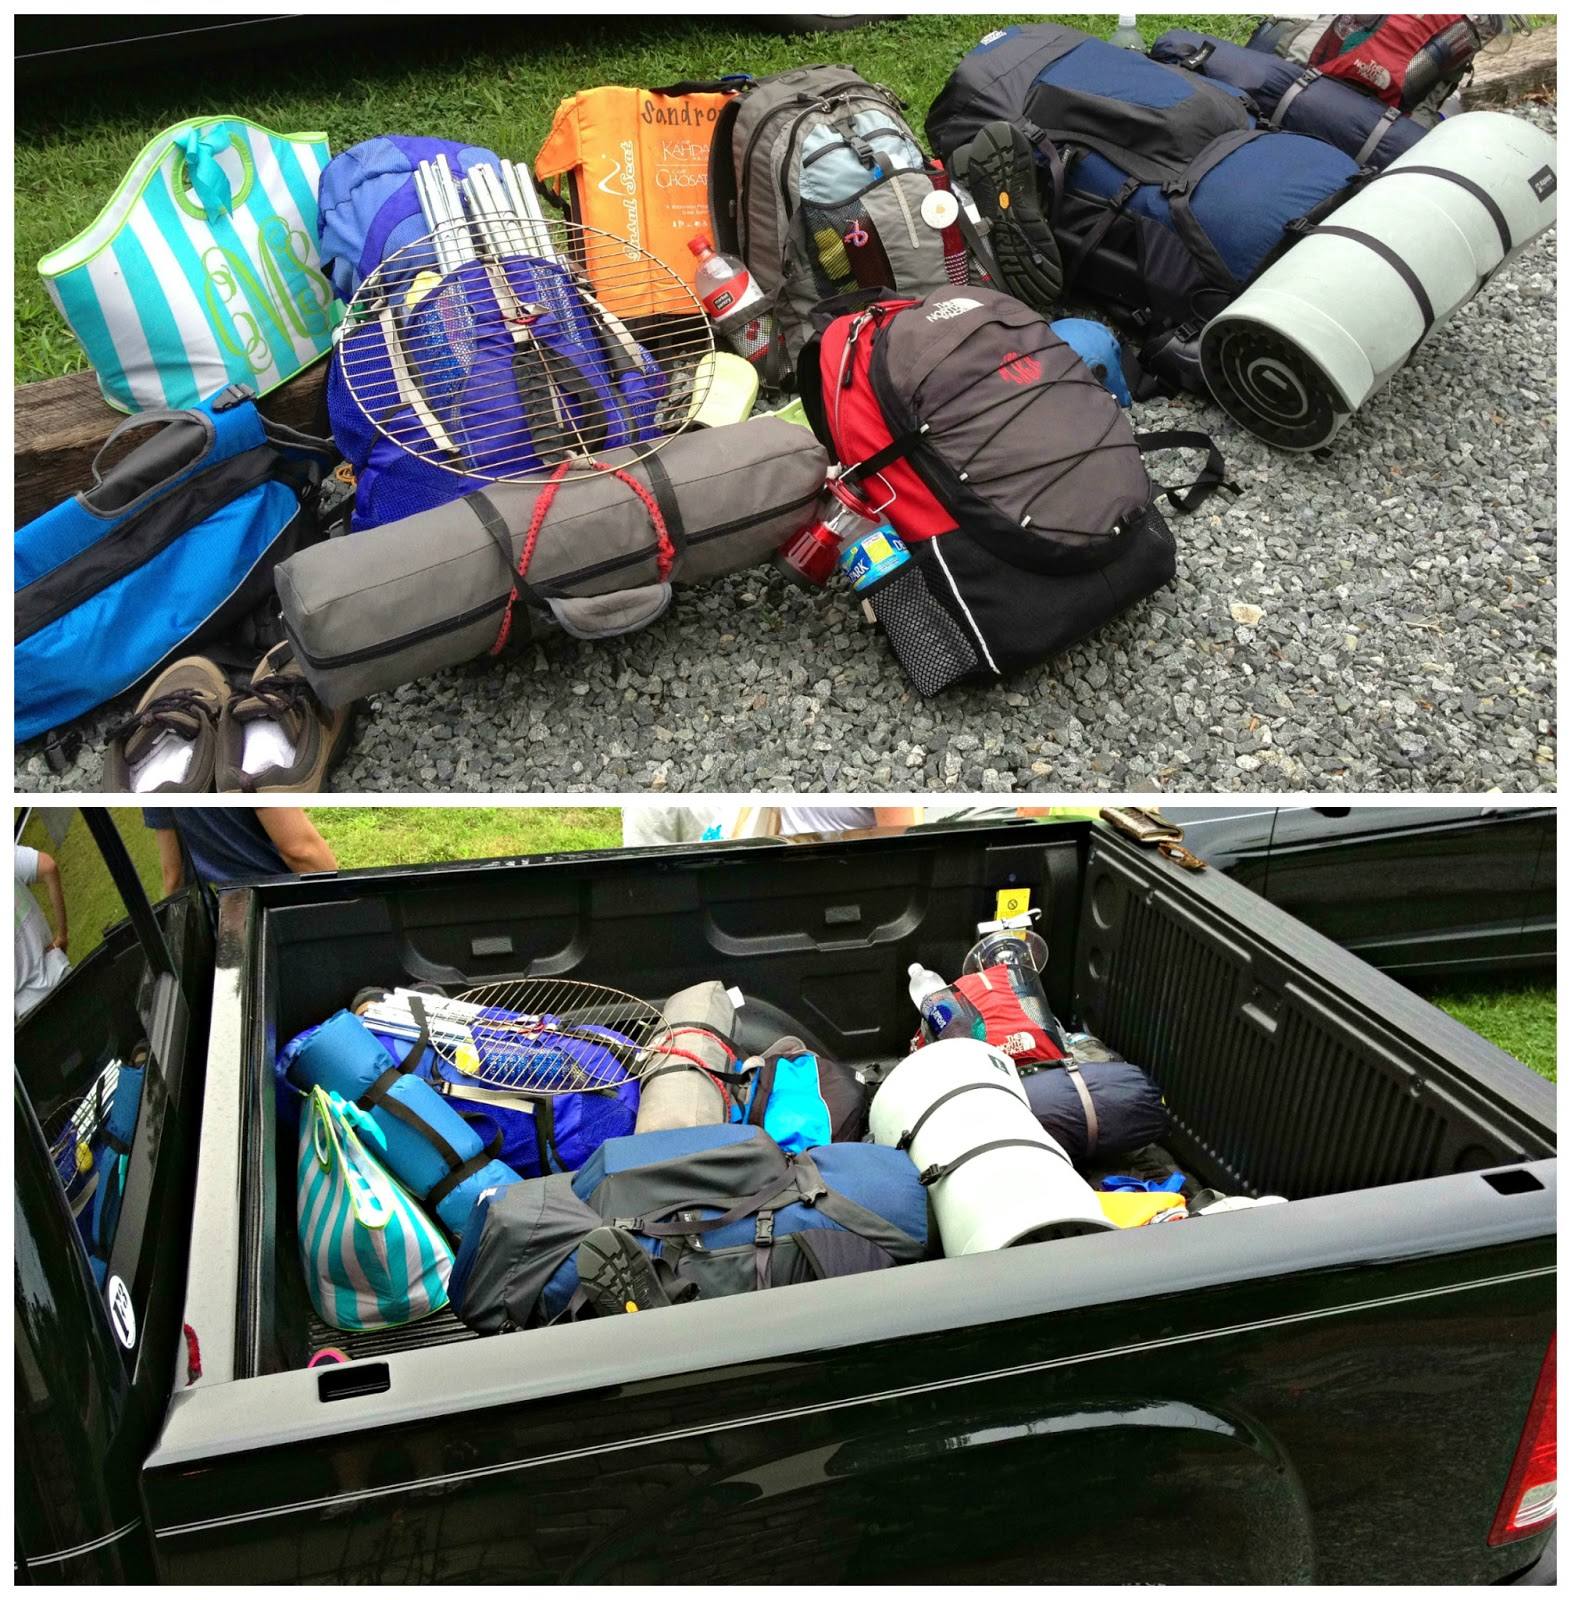 Once We Arrived Loaded Up Our Gear And Hiked About 15 Miles In The Pouring Down Rain